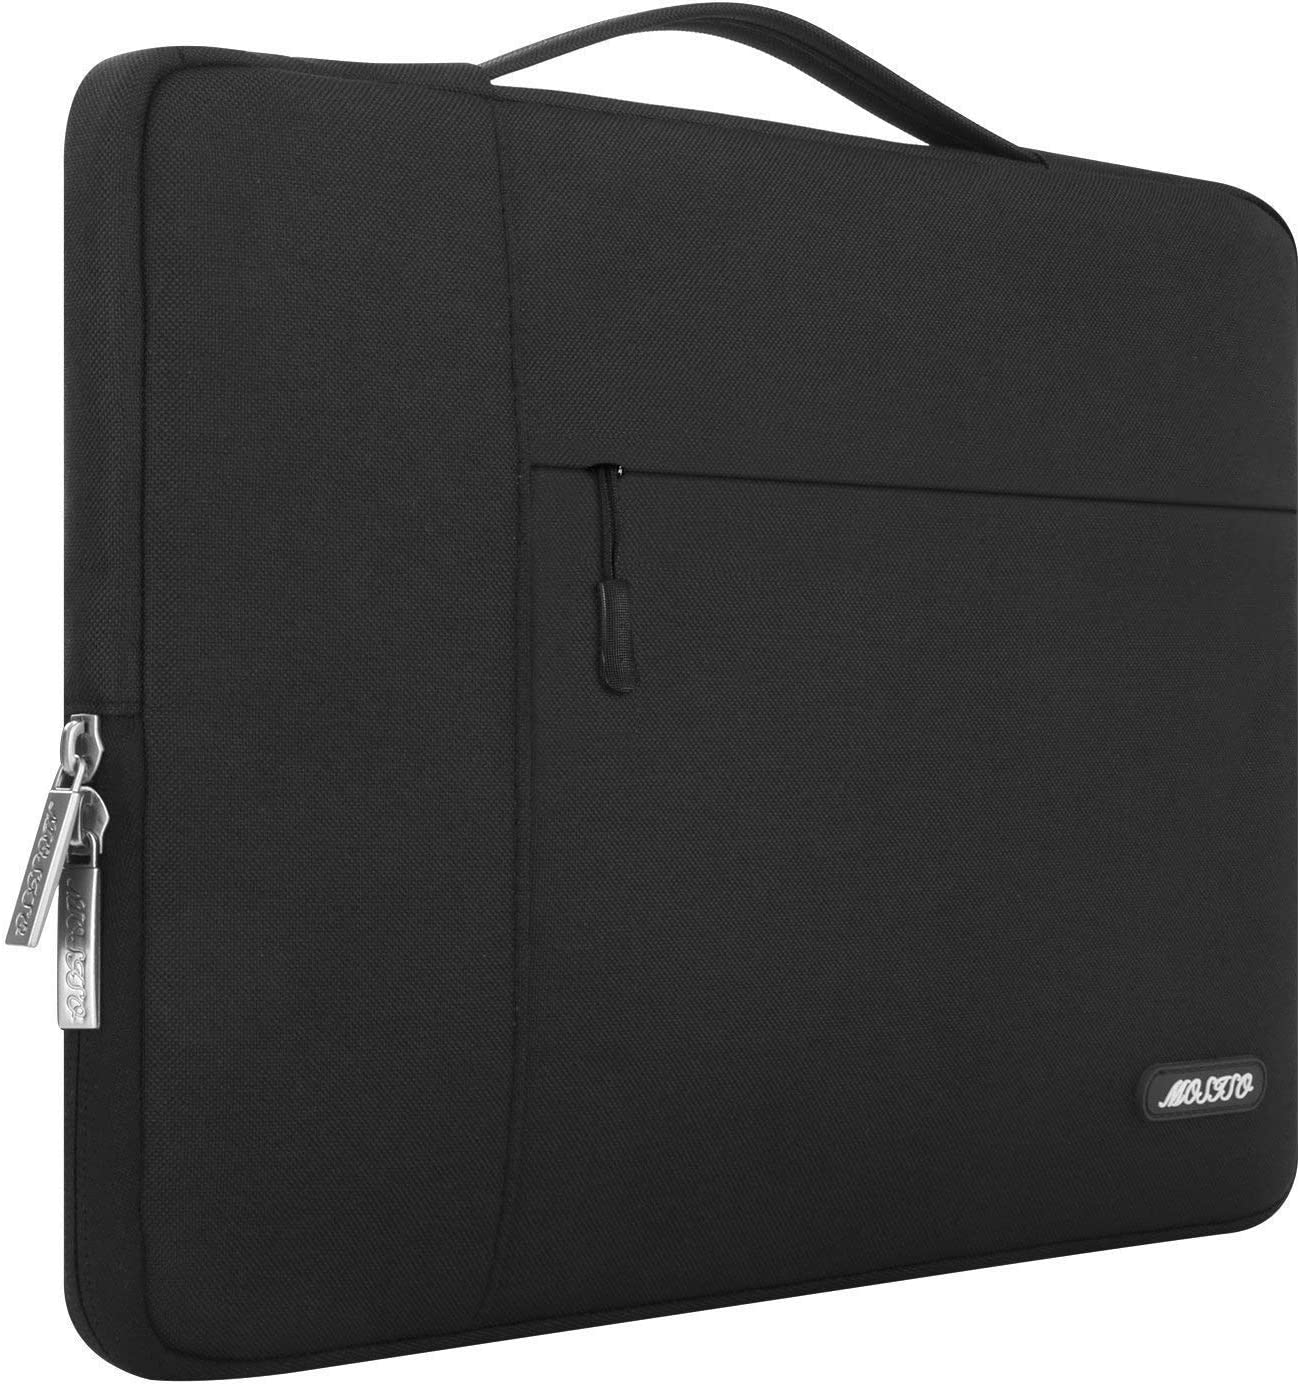 MOSISO Laptop Sleeve Compatible with 11.6-12.3 inch Acer Chromebook R11/HP Stream/Samsung/Lenovo/ASUS/MacBook Air 11, Polyester Multifunctional Briefcase Carrying Bag, Black